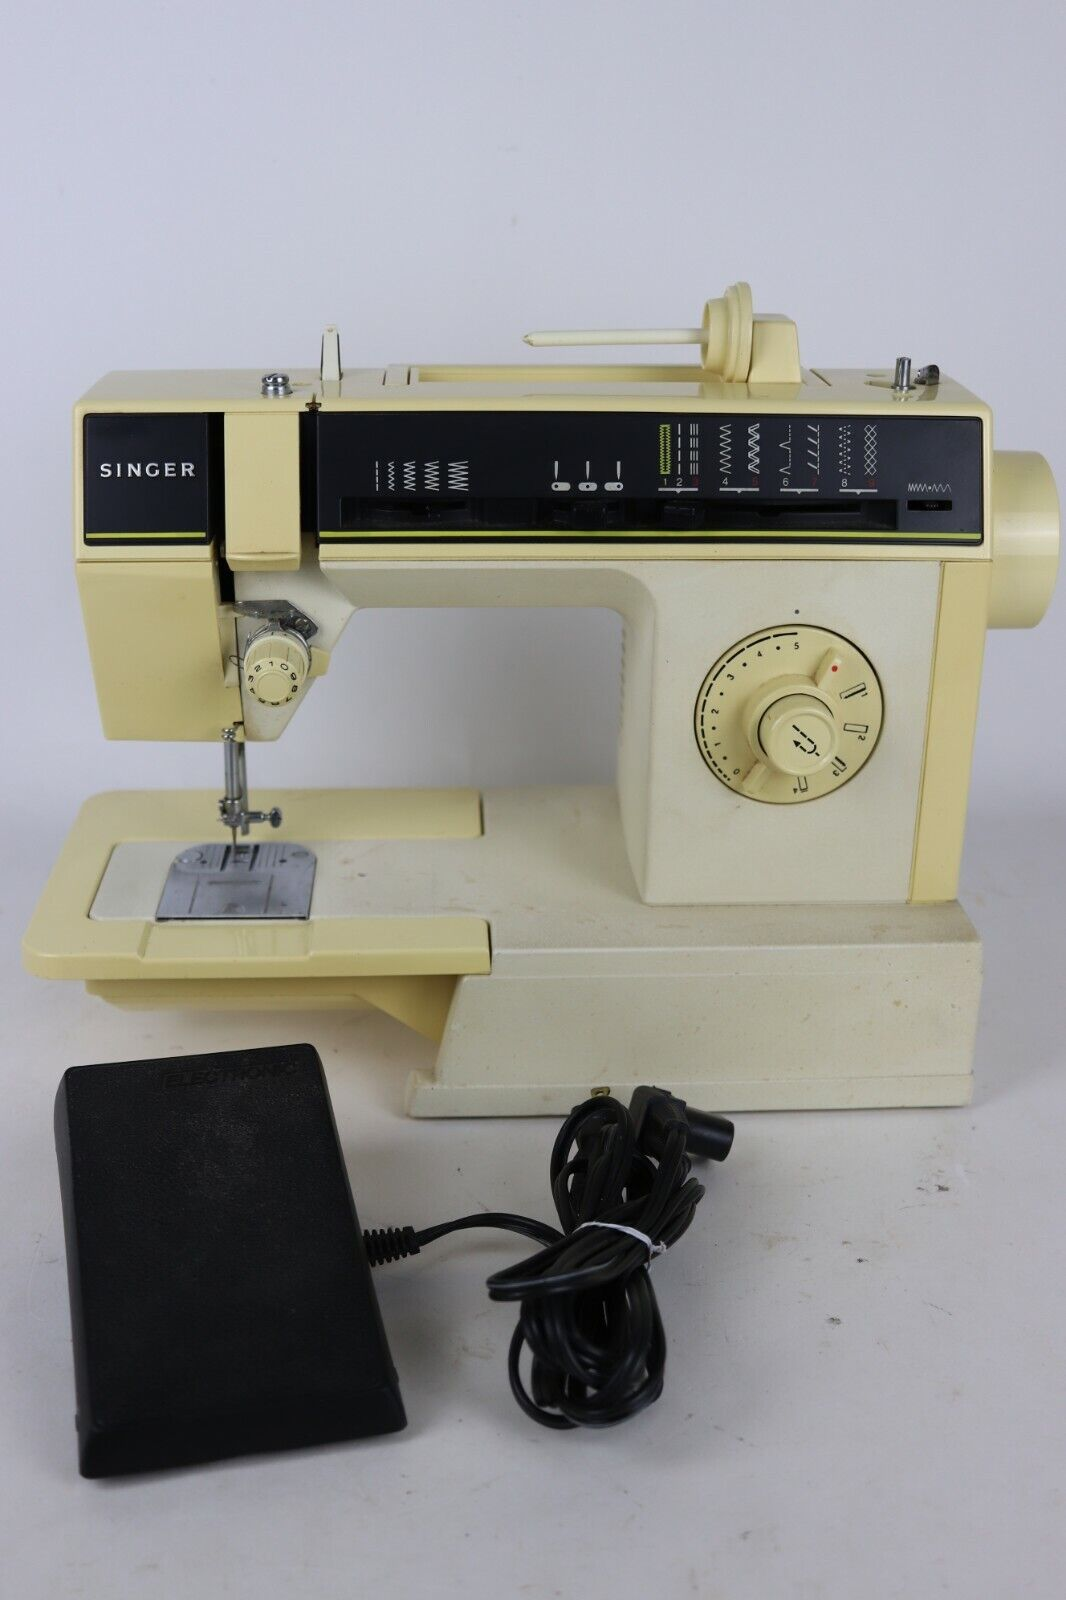 Singer Genie : singer, genie, SINGER, Genie, Portable, Sewing, Machine, Cover, Online